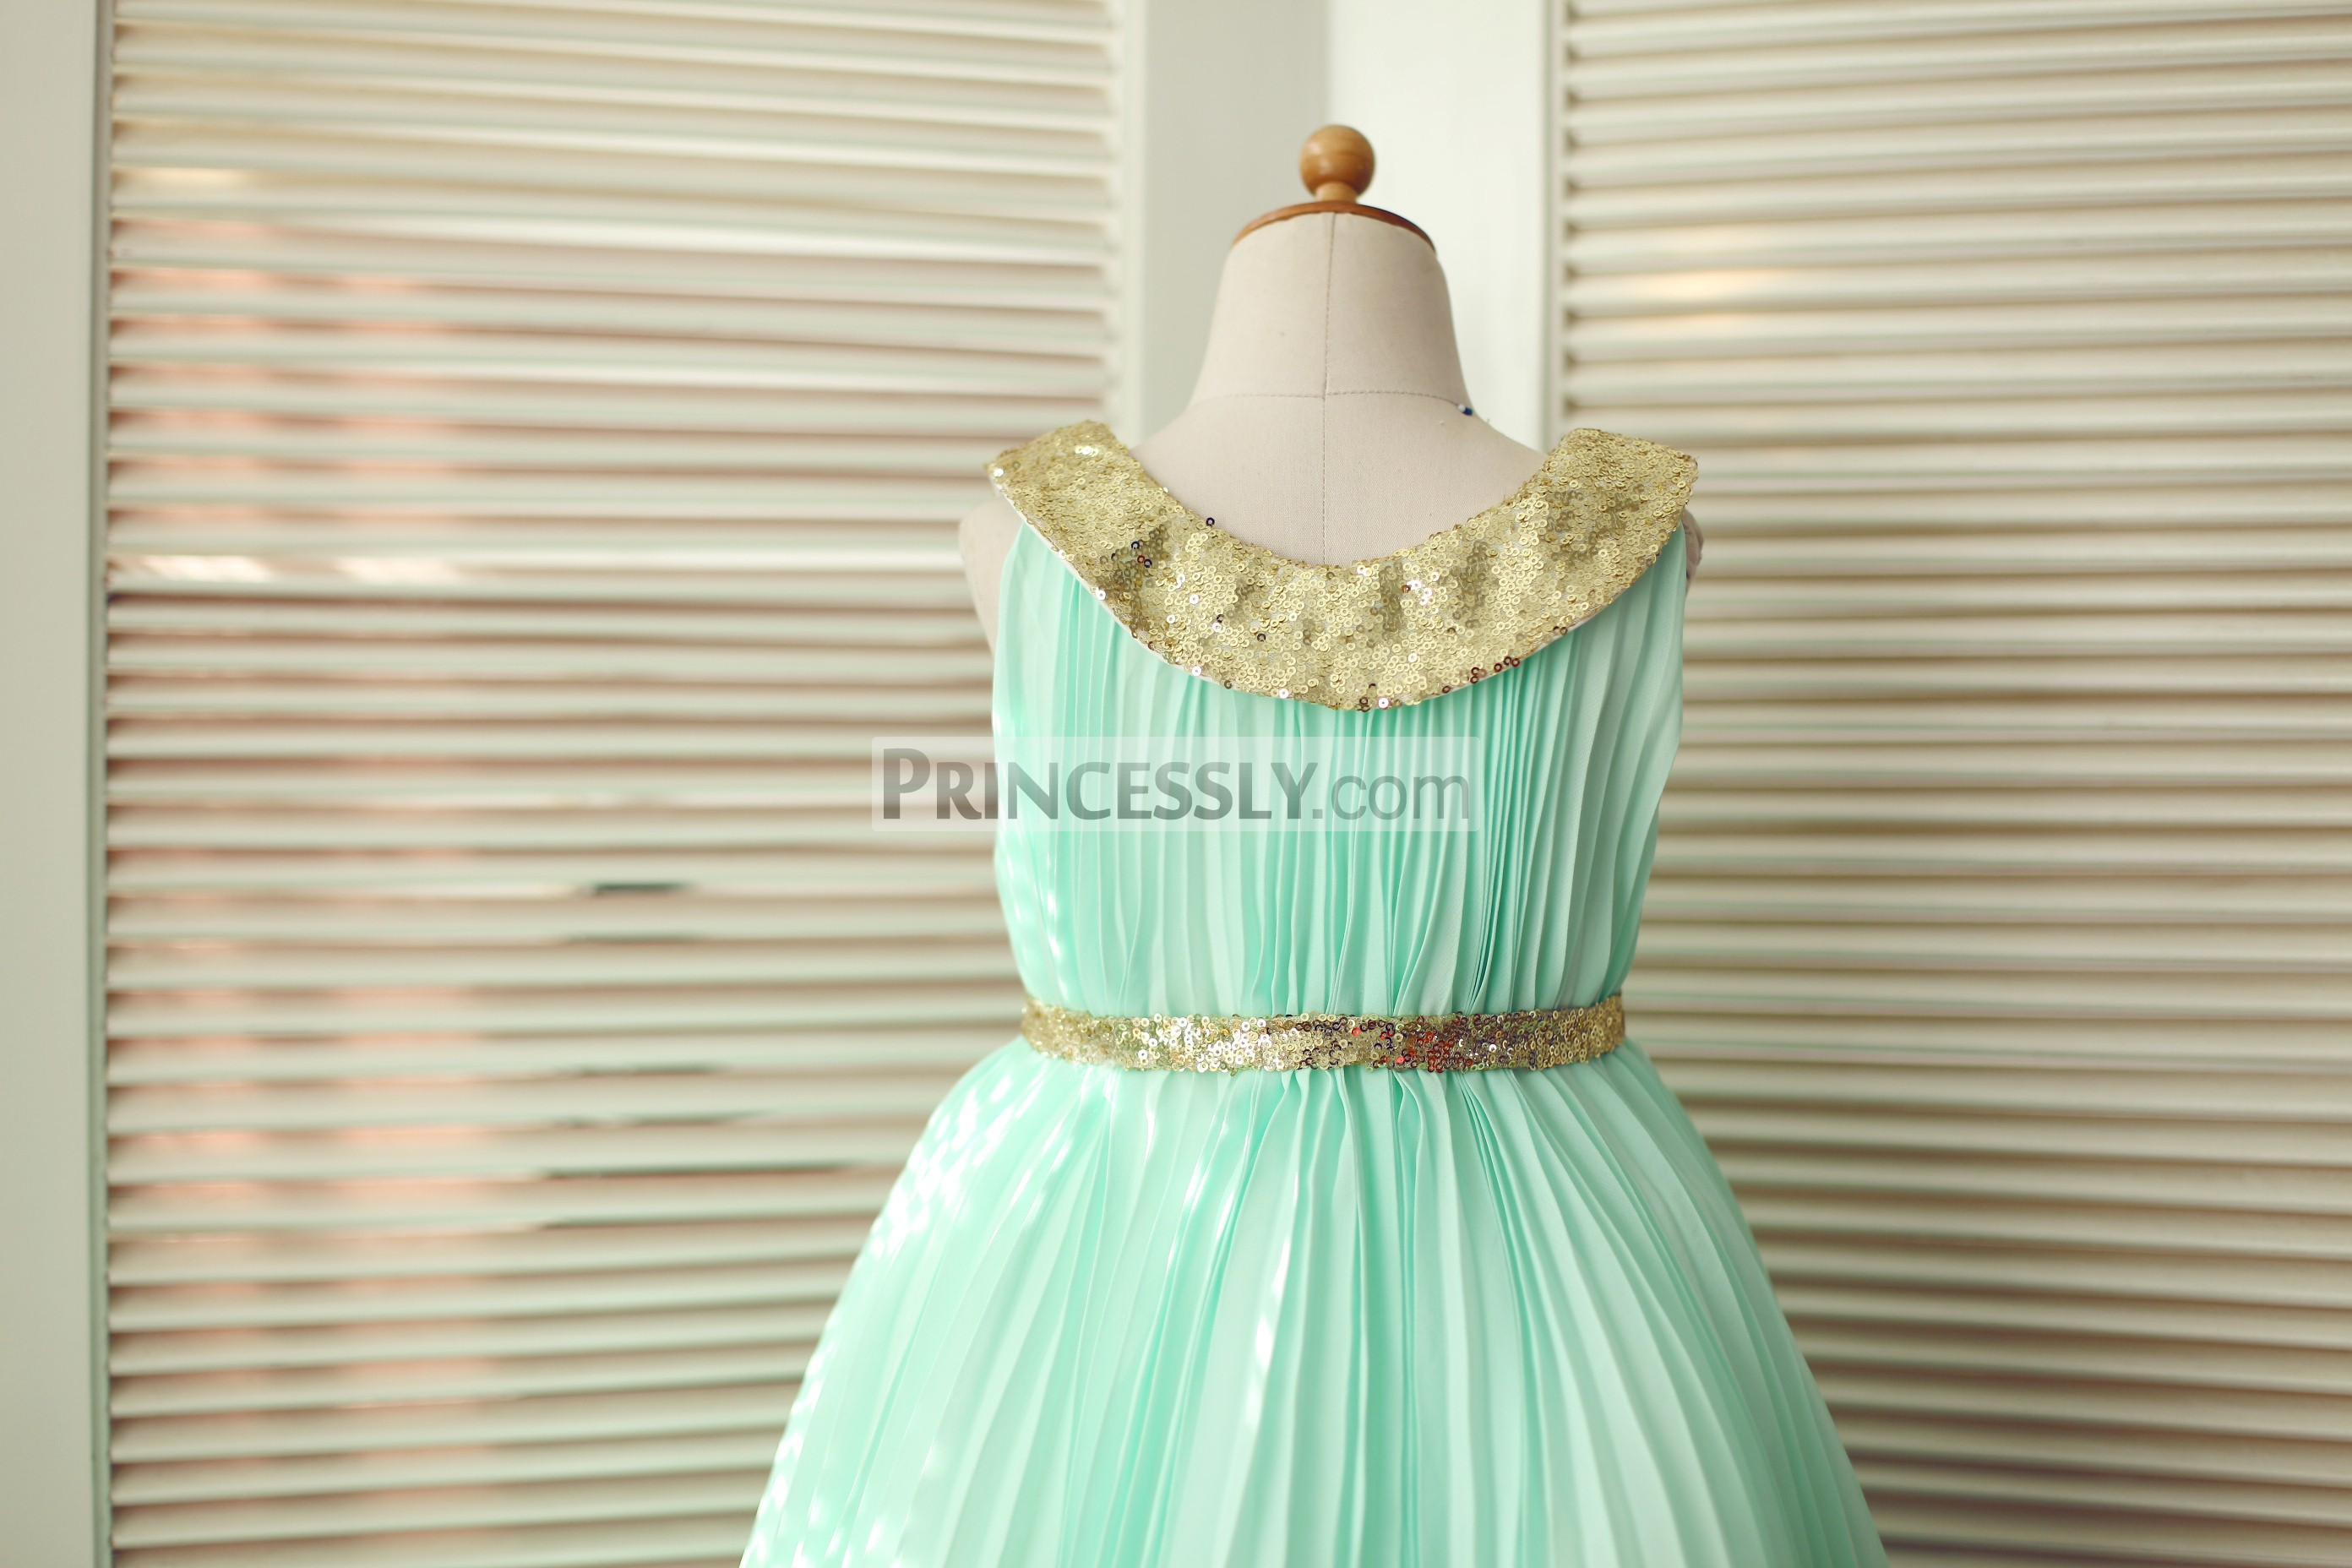 1c99eab4a28 ... tulle wedding baby girl dress. Gold sequin peter pan collar and belt.  Gold sequin neck and belt for the whole mint green pleated dress